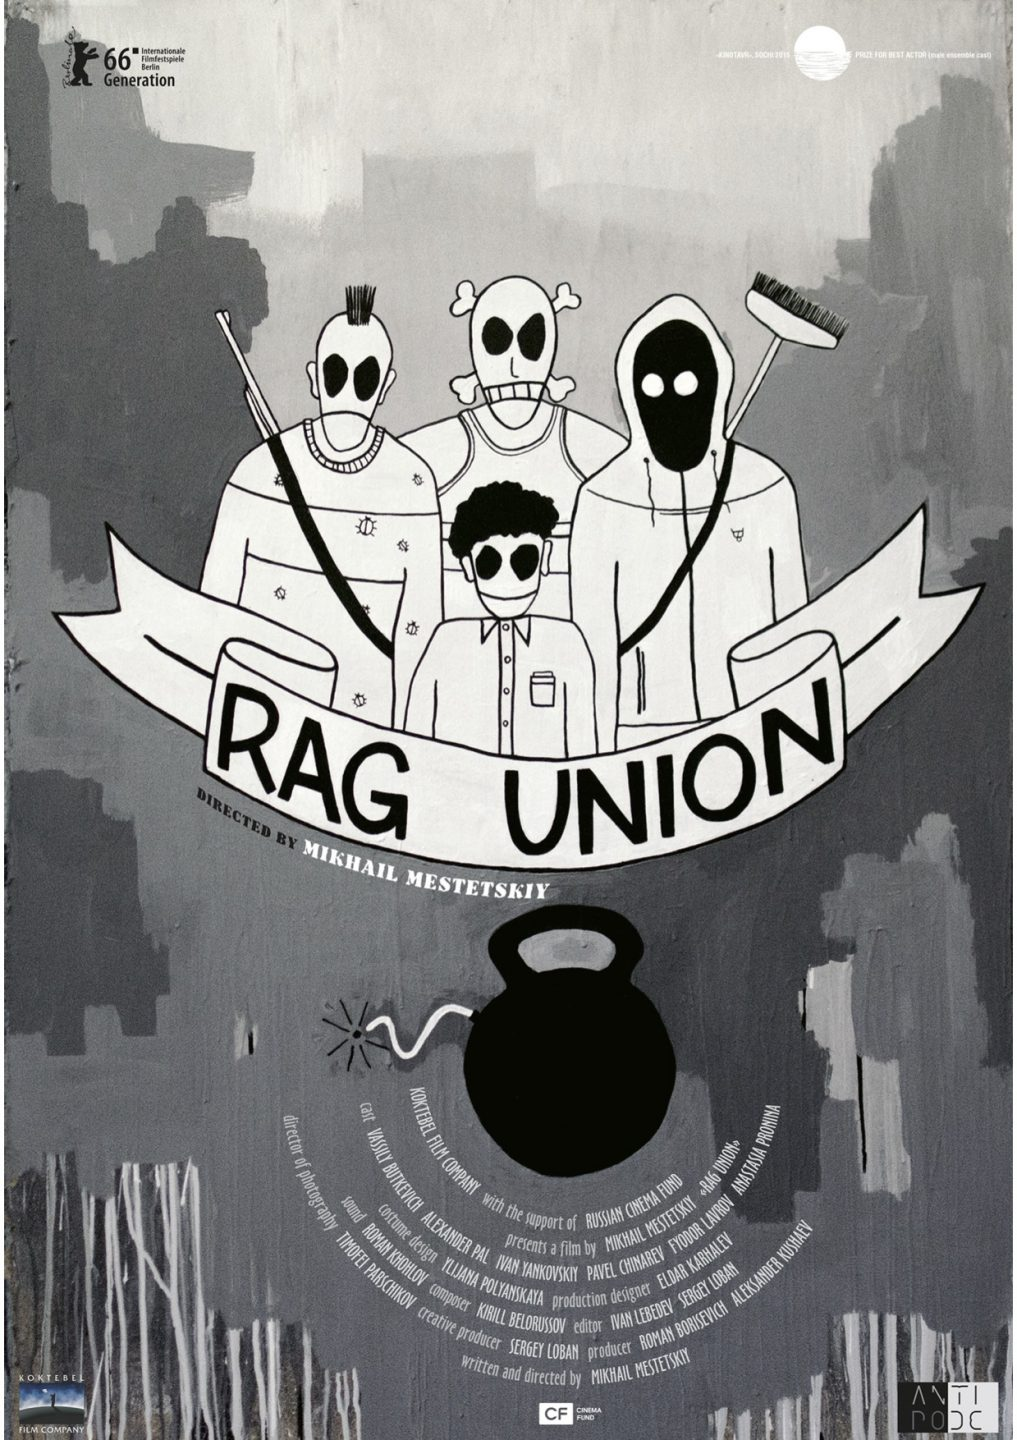 Rag_Union_poster-first_70x100